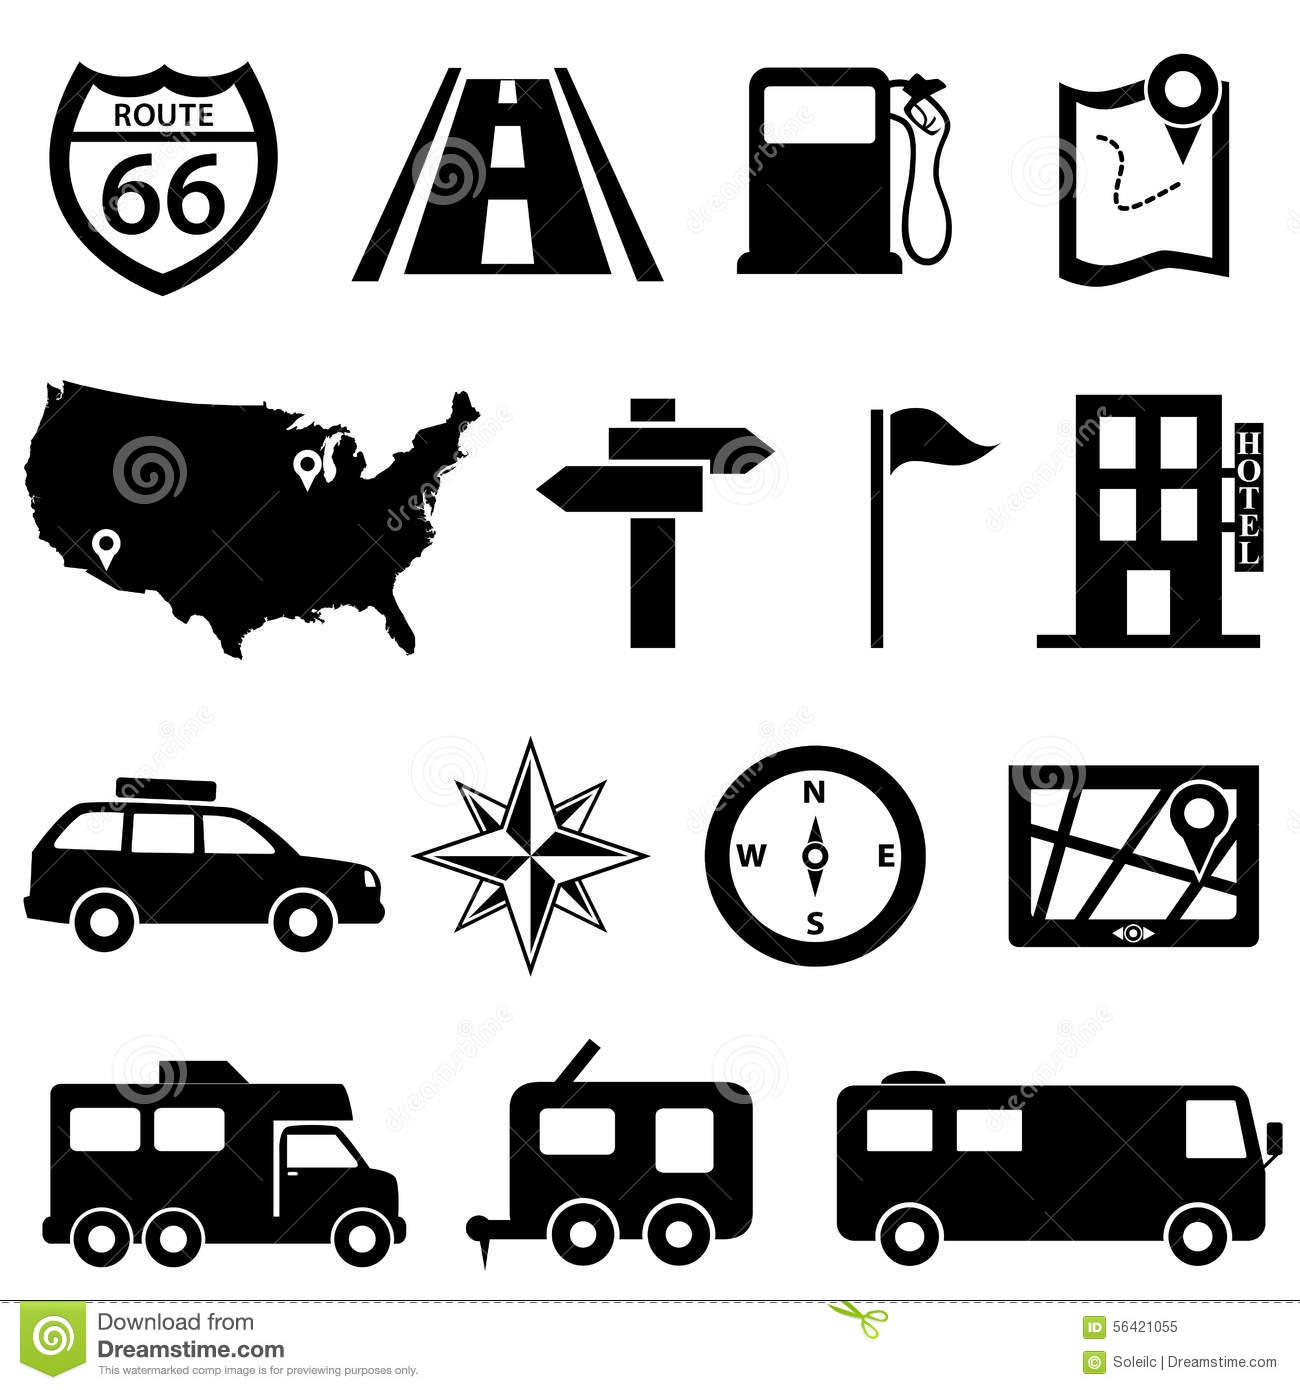 Closed Loop Analog Dc Motor Based Servo Motor Using Tle4209 as well Car Audio Logo Wallpaper as well US6946977 furthermore Stock Illustration Road Trip Icon Set Travel Image56421055 in addition Electric Guitar Piezo Pickup Diy. on car audio positioning